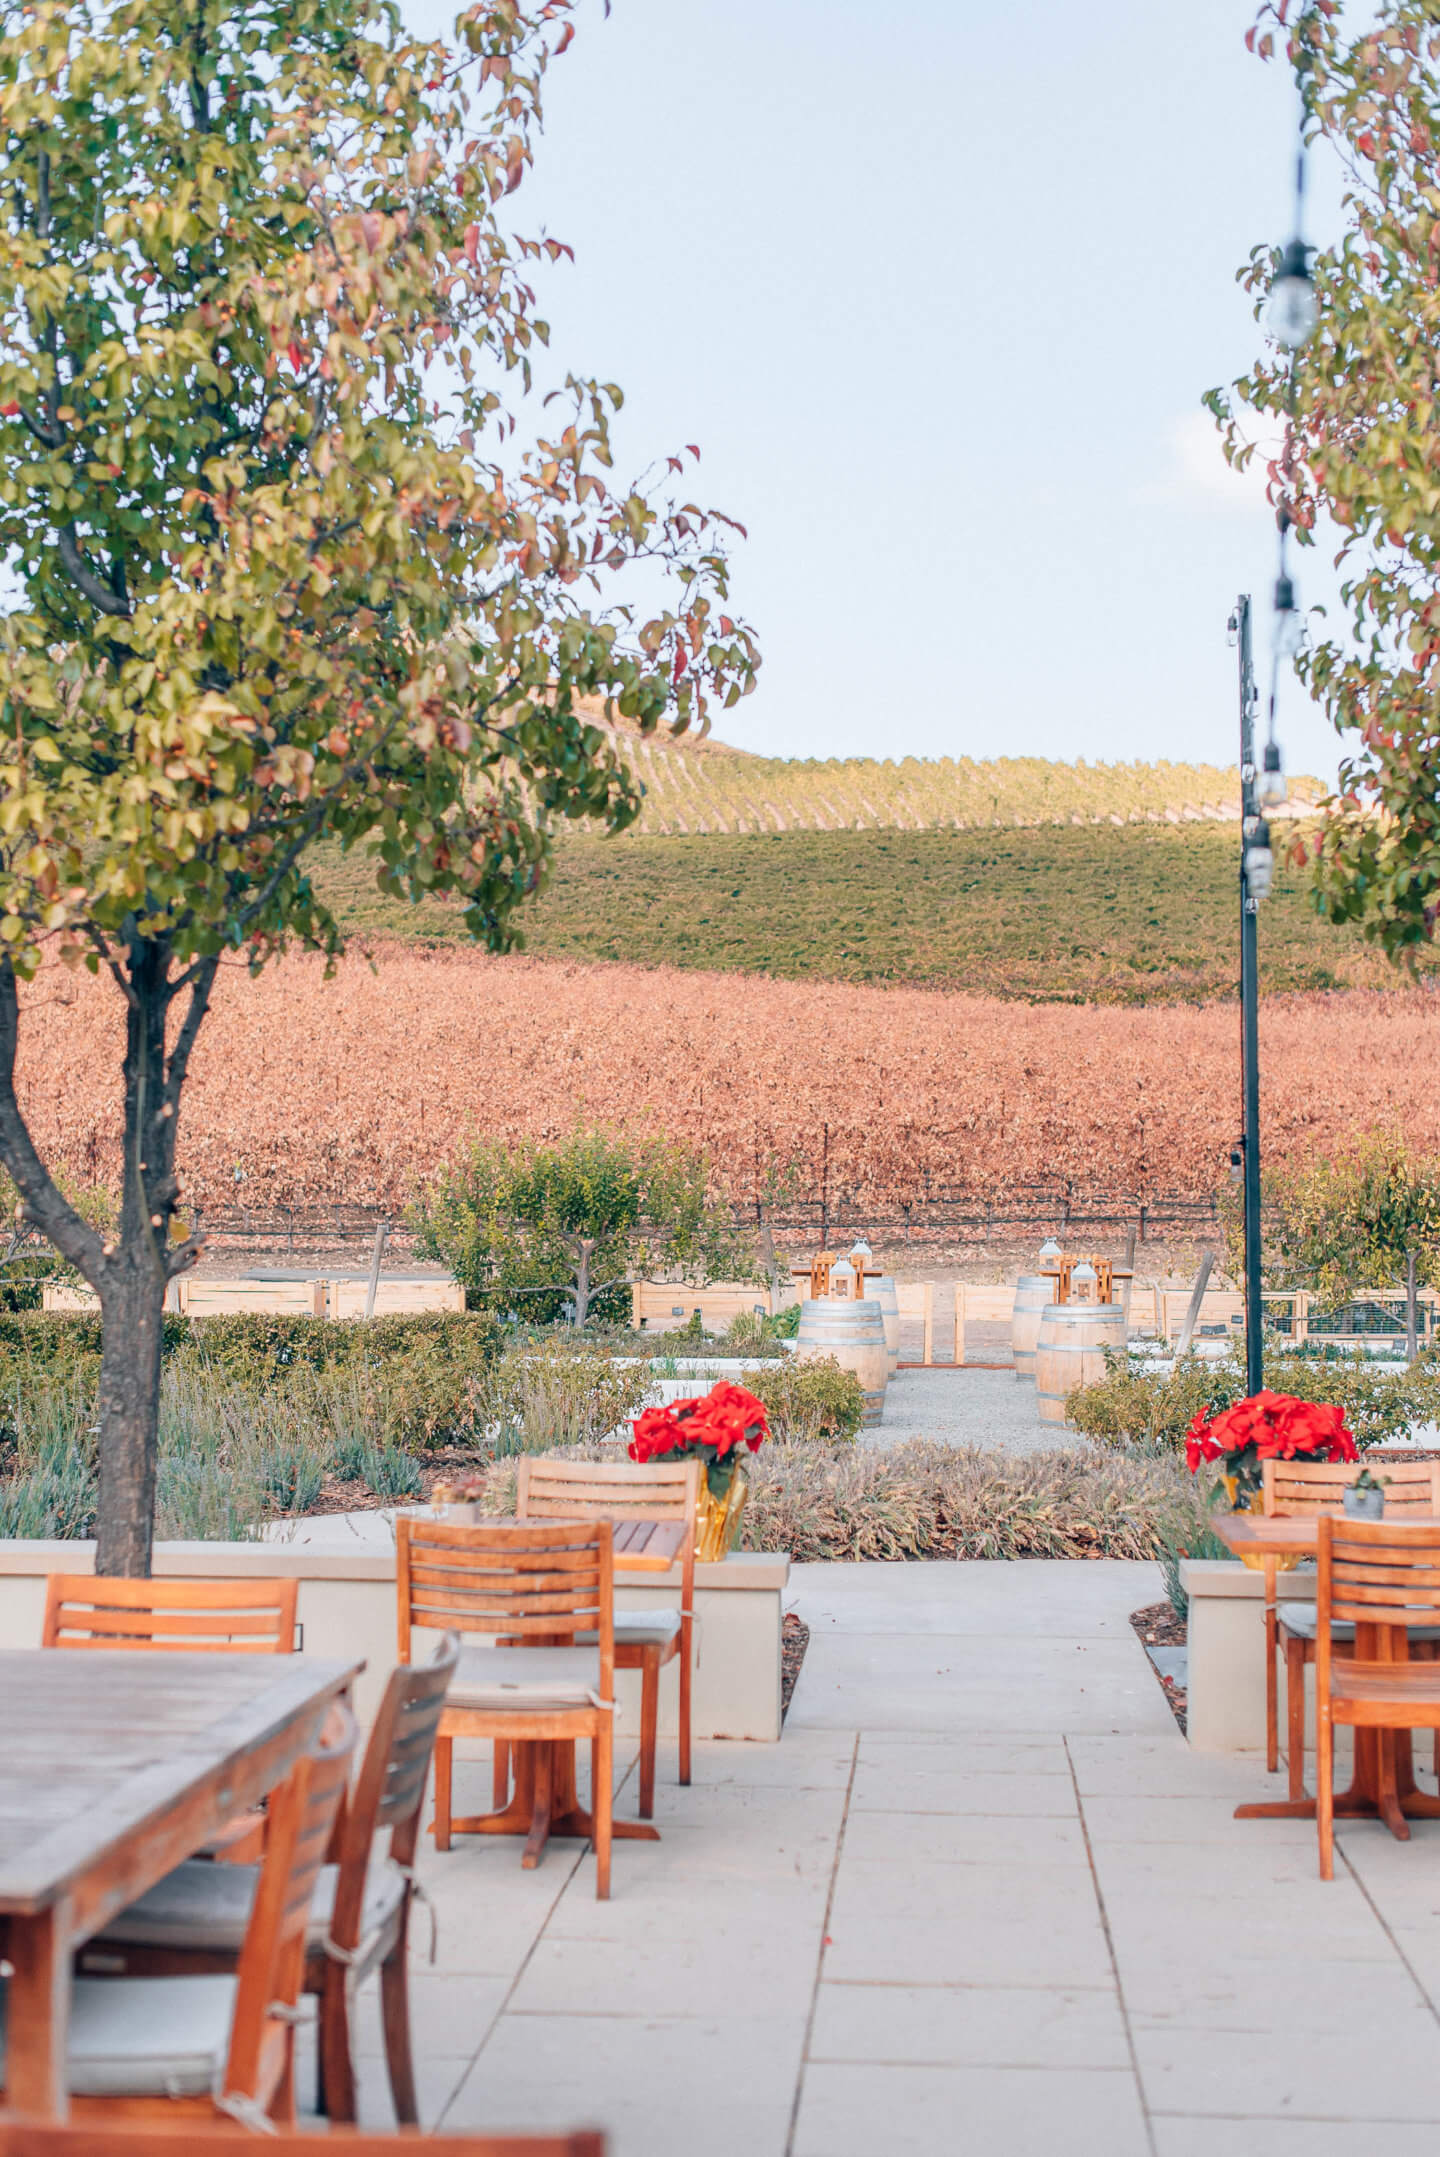 Paso Robles best restaurants, by travel blogger What The Fab